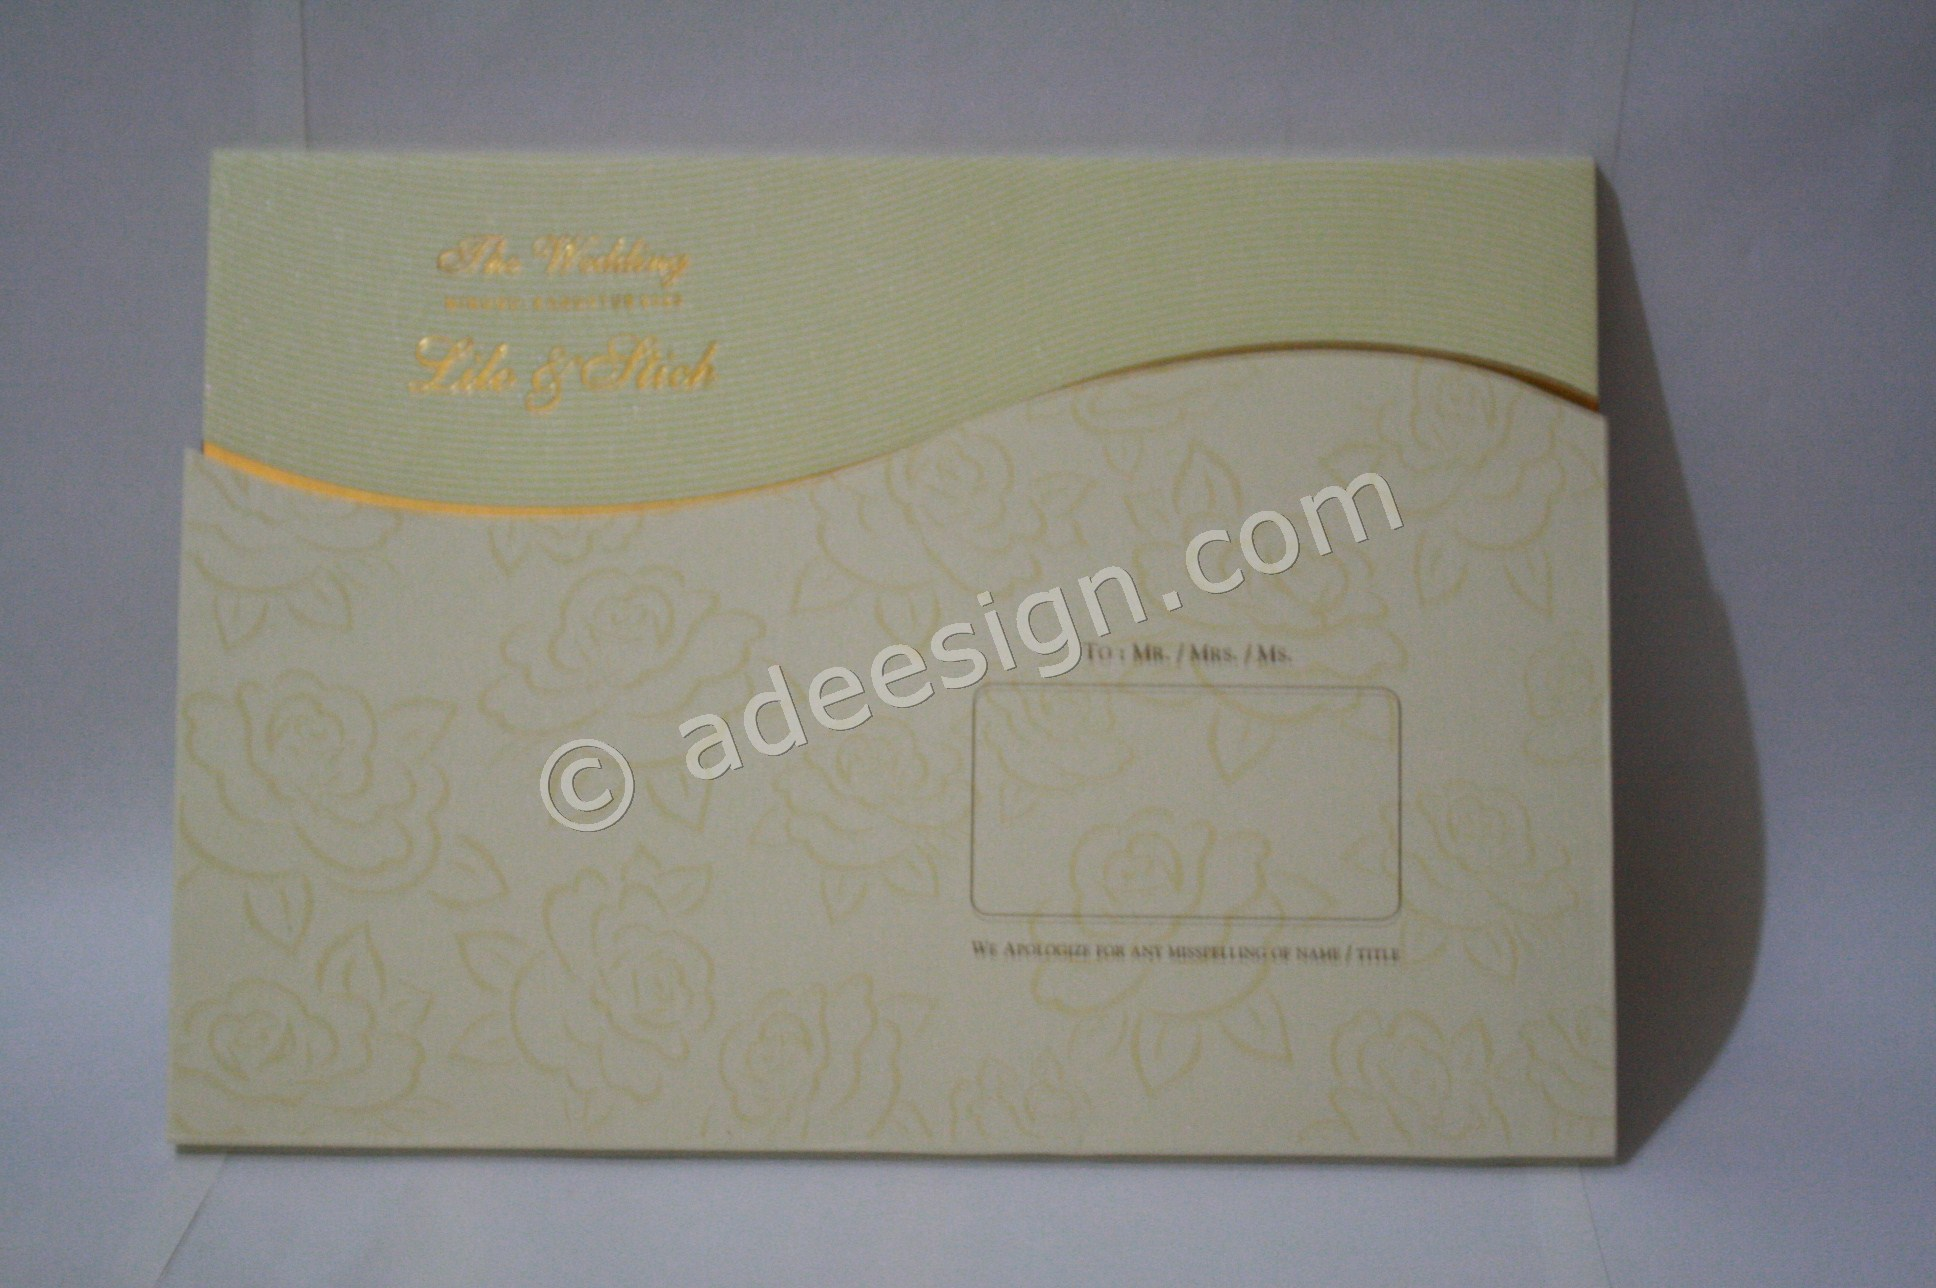 Undangan Pernikahan Hardcover Lilo dan Stich 2 - Pesan Wedding Invitations Simple di Jambangan Karah